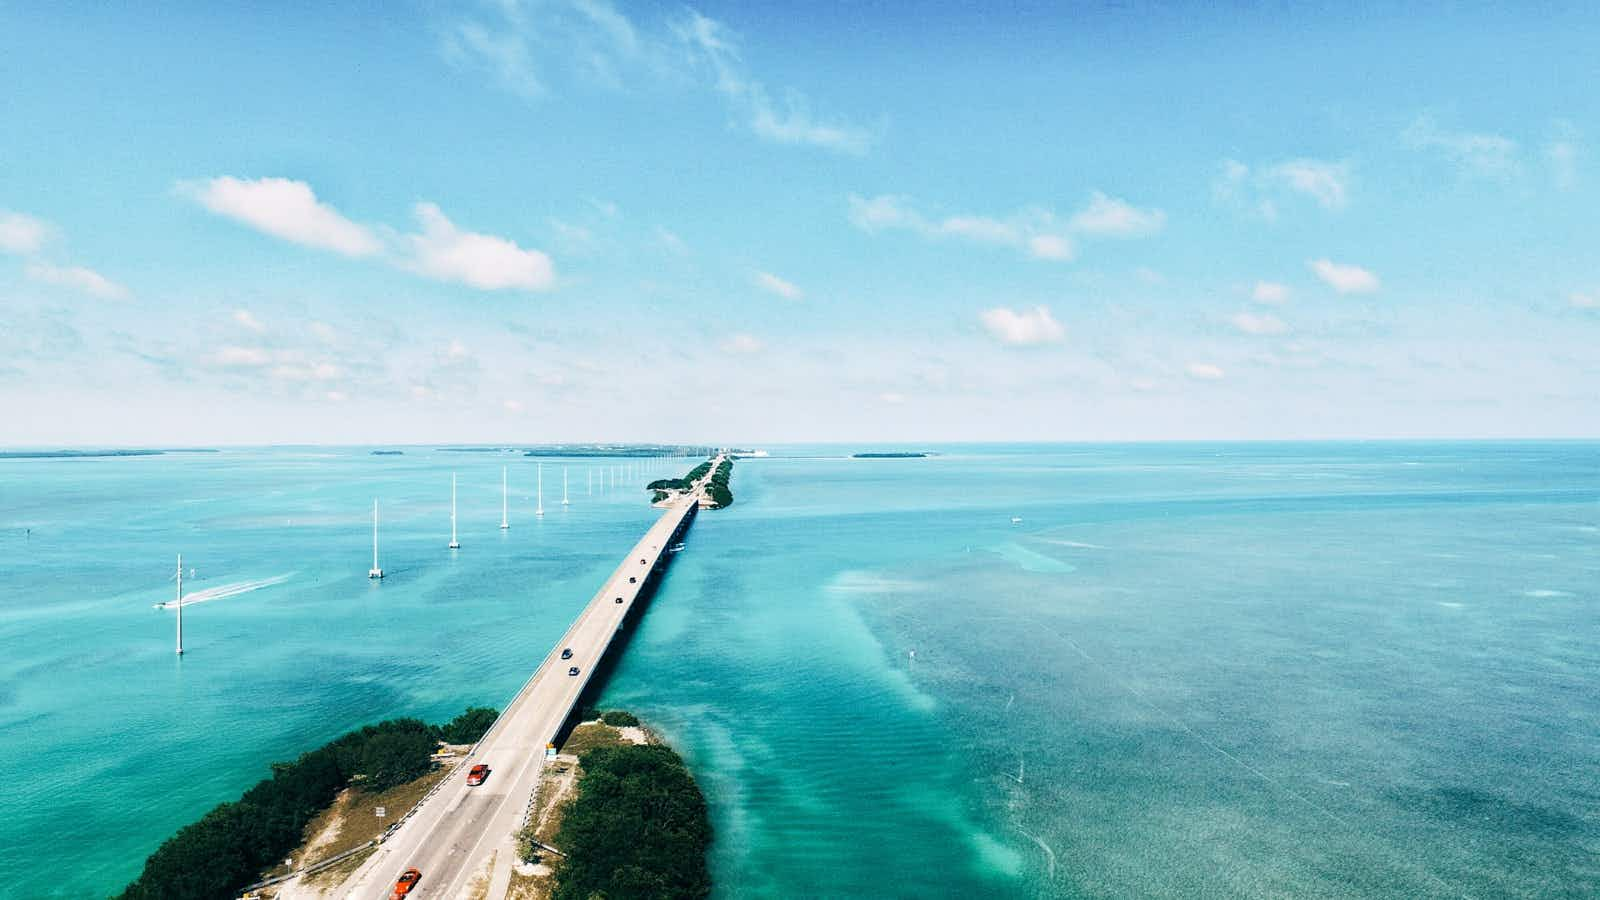 Head to the Florida Keys for some incredible eco-friendly adventures @ Reese Lassman / Getty Images